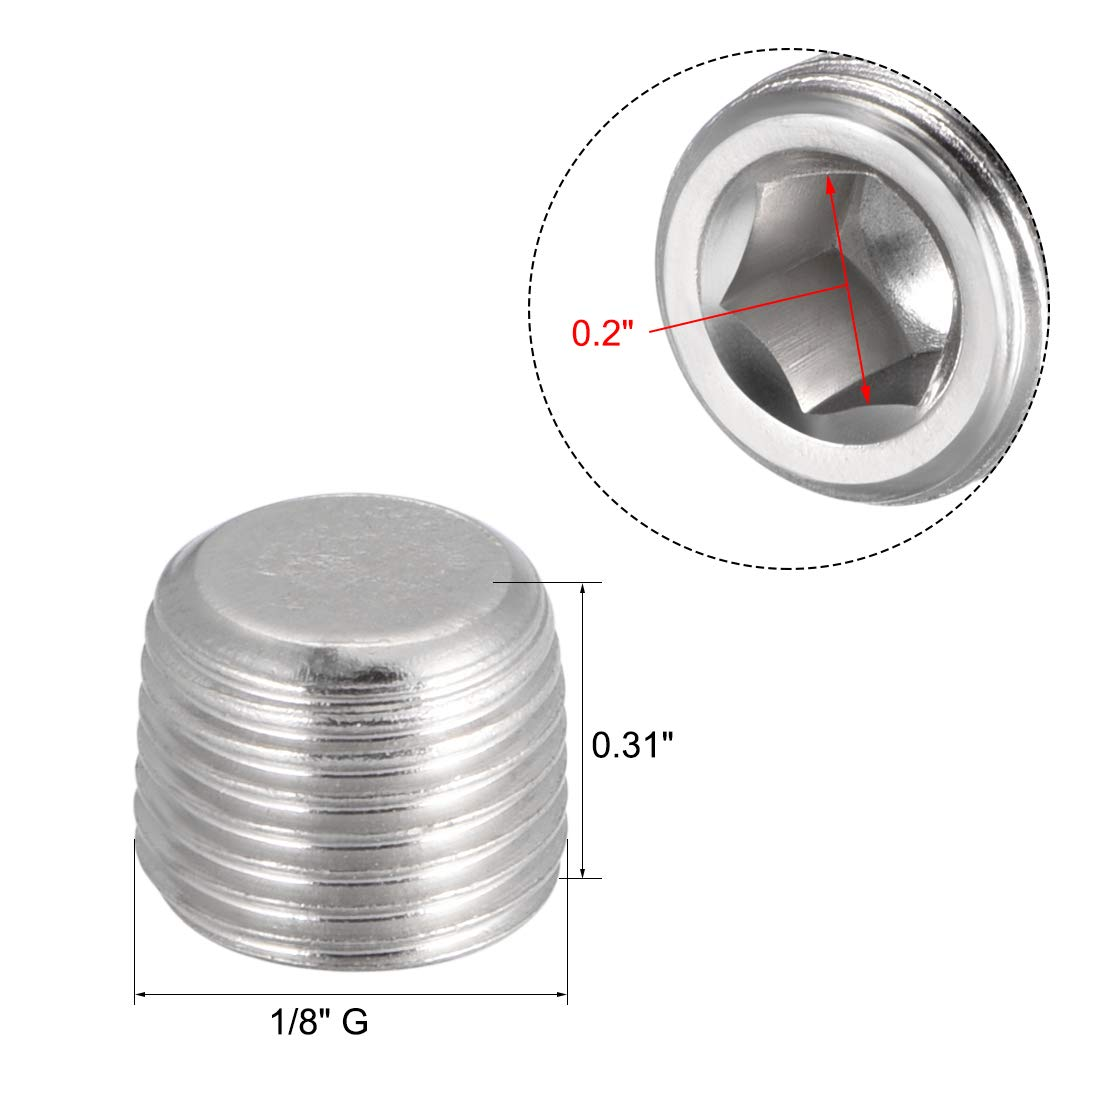 Pack of 5 uxcell a13030600ux0849 Air Pipe Fittings 1//4 PT Thread Hex Socket Metal Connector Caps Silver Tone 5 Pcs